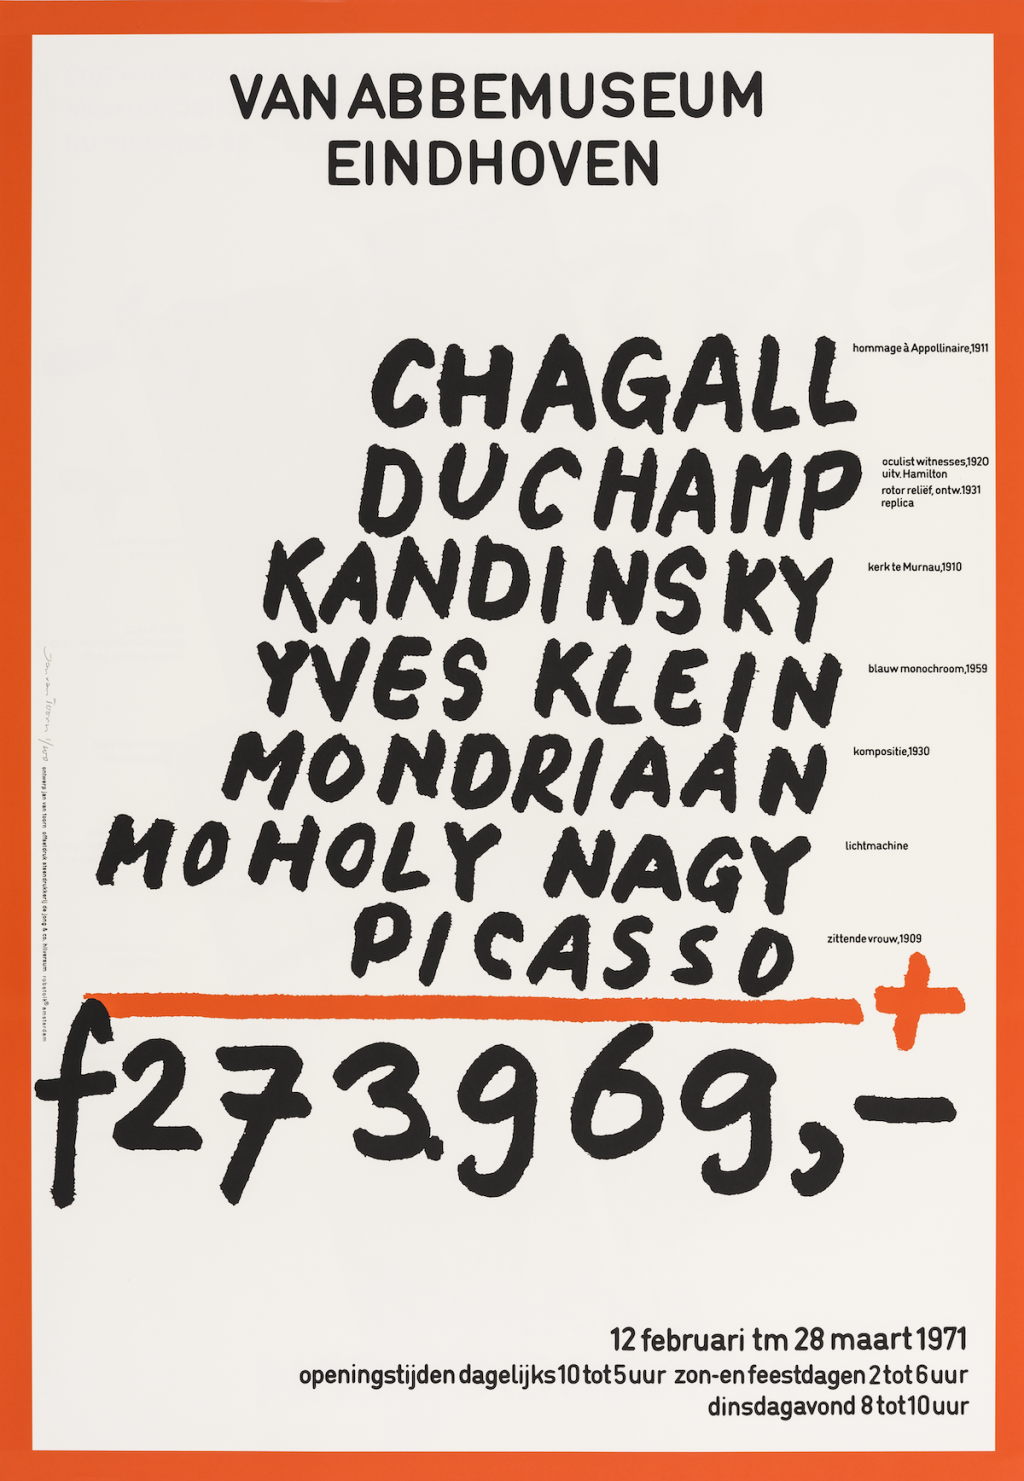 Poster Jan van Toorn 'chagall/duchamp er was eens… de collectie nu' (1971) Reprint 2015, litho on paper. Collection Van Abbemuseum. Photo: Peter Cox, Eindhoven